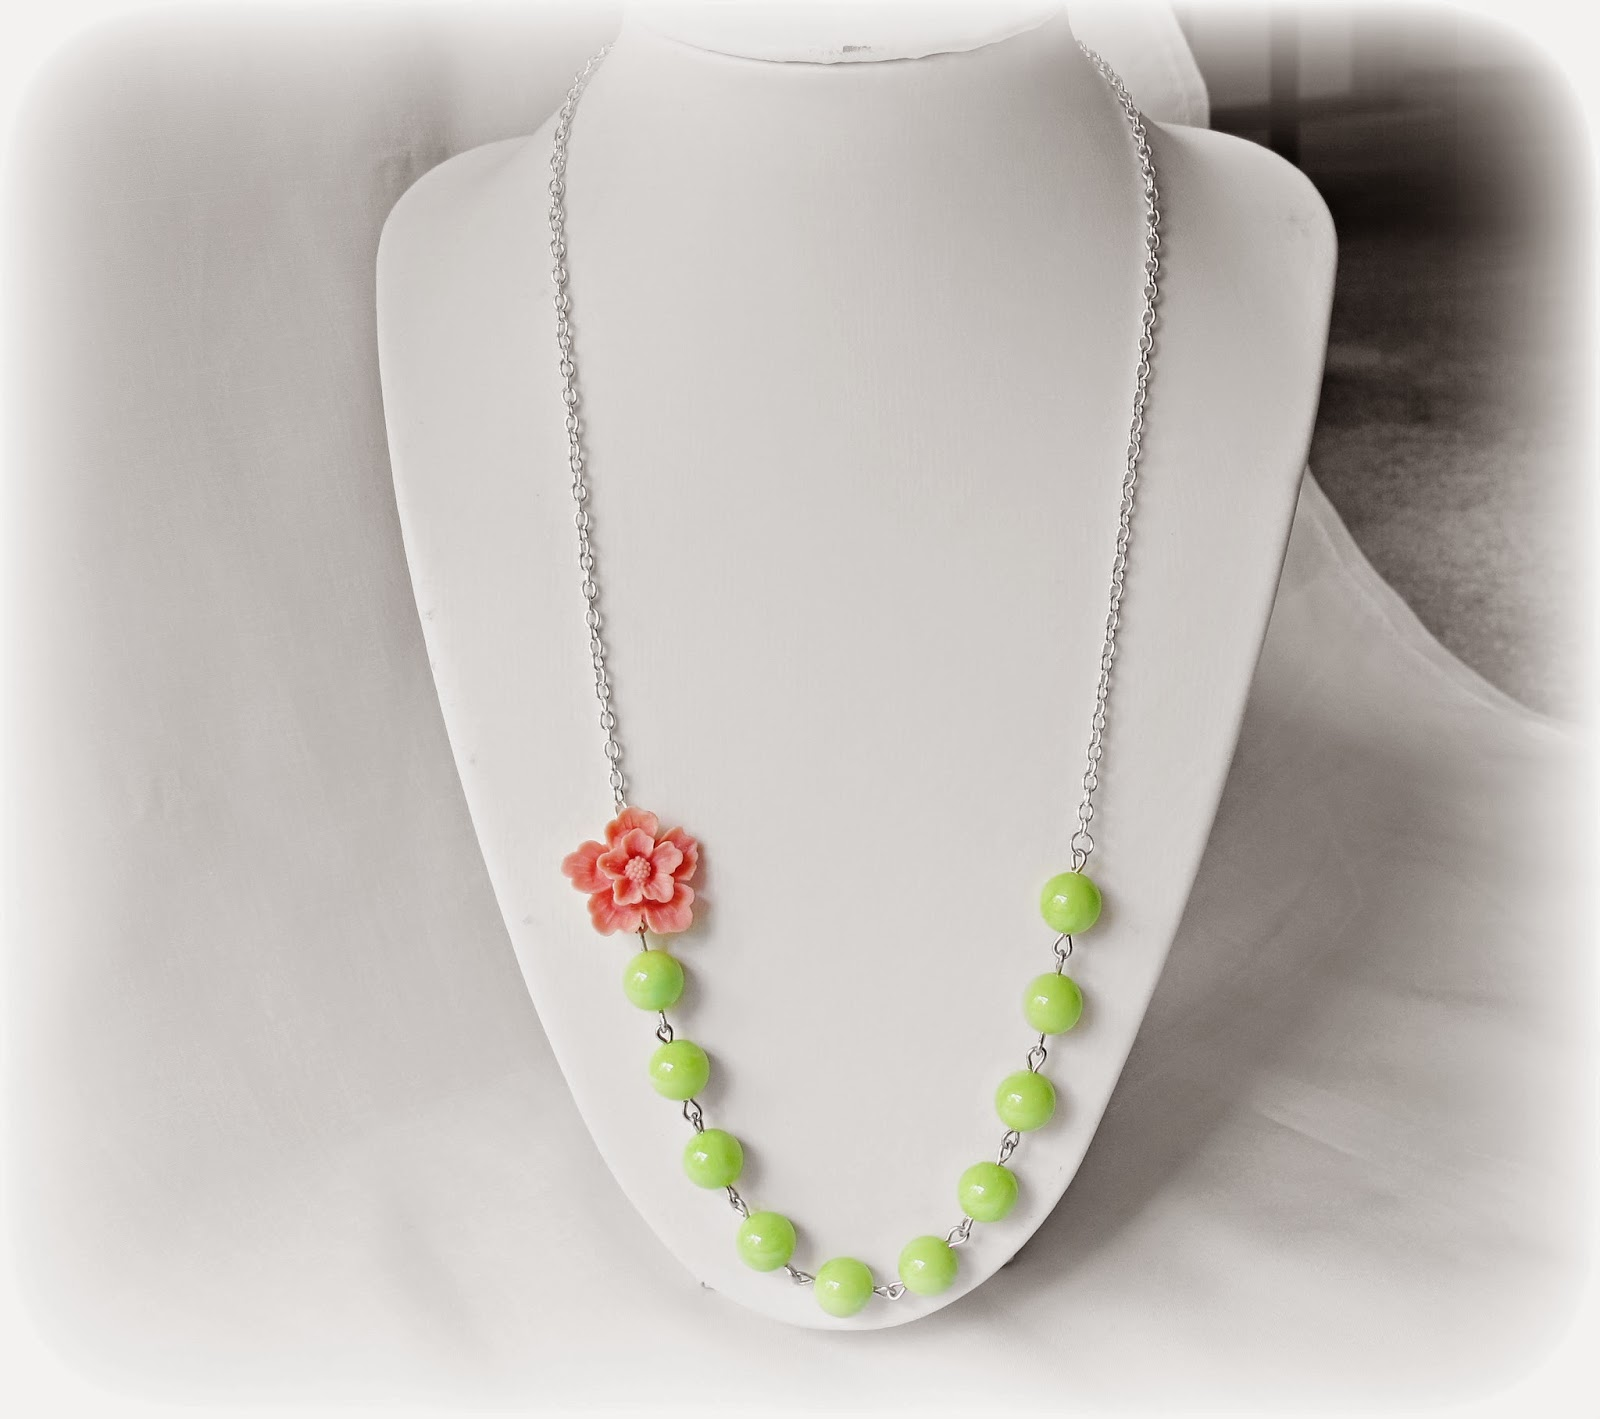 image melian necklace candyland range two cheeky monkeys pink sakura flower avocado green vintage beads